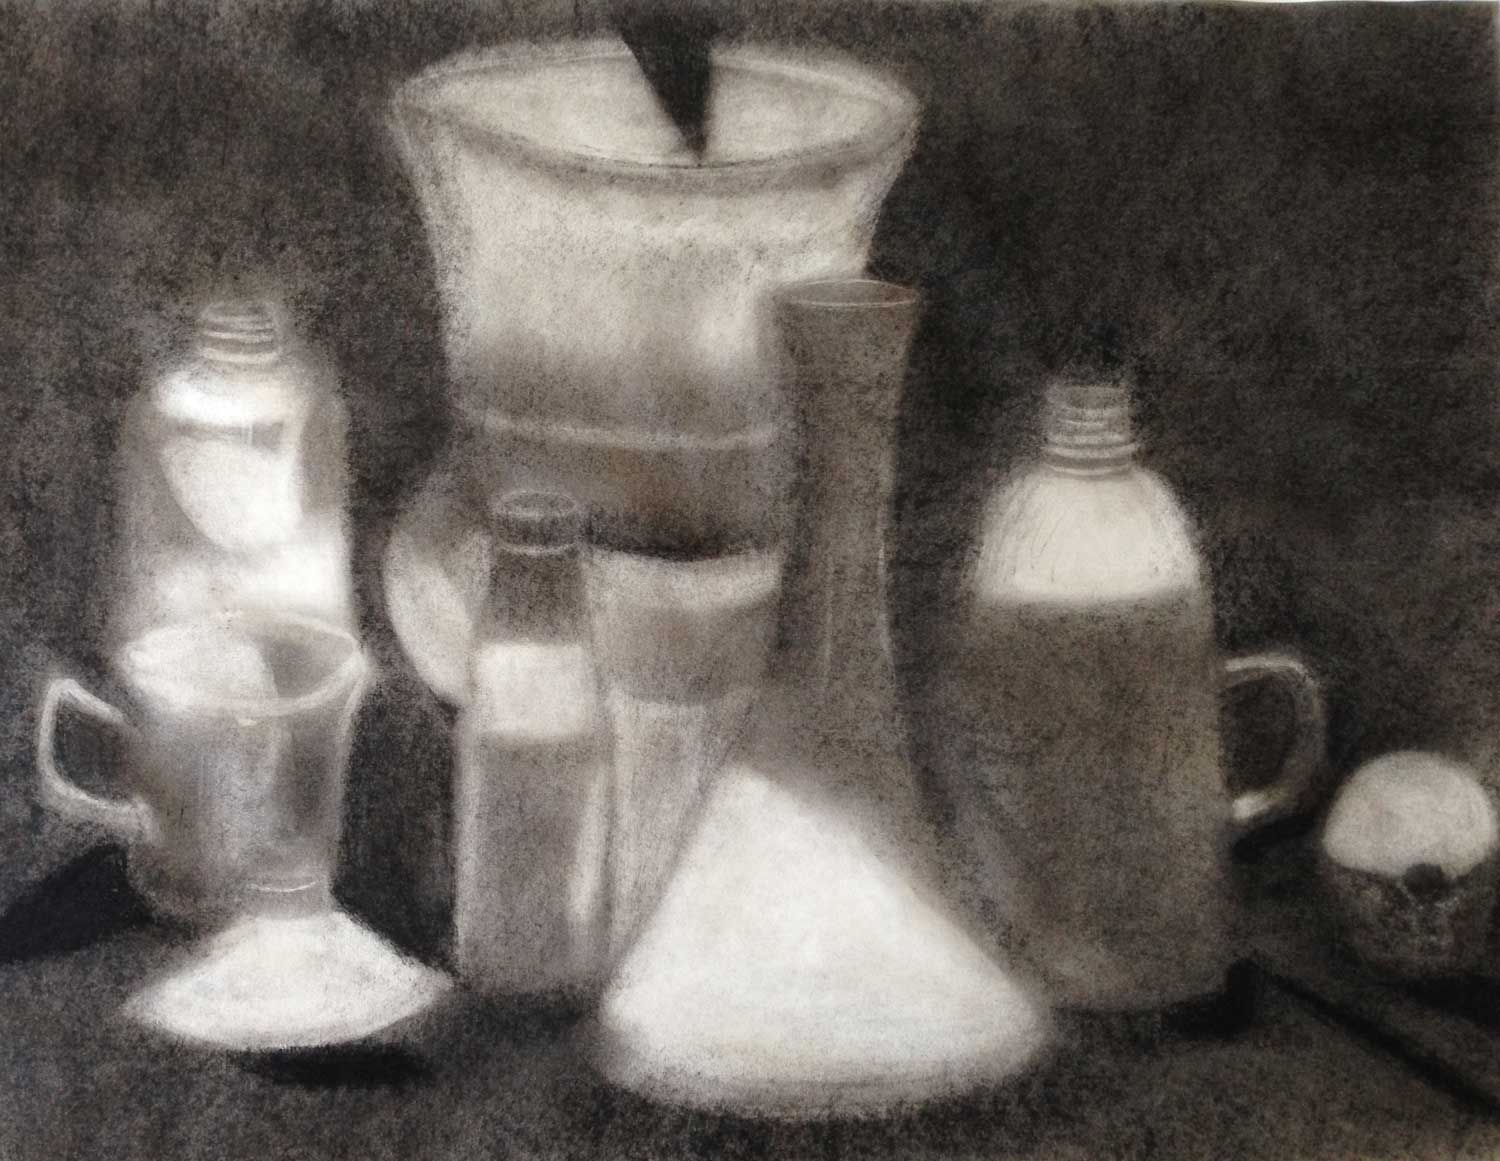 untitled still life, charcoal, 2014